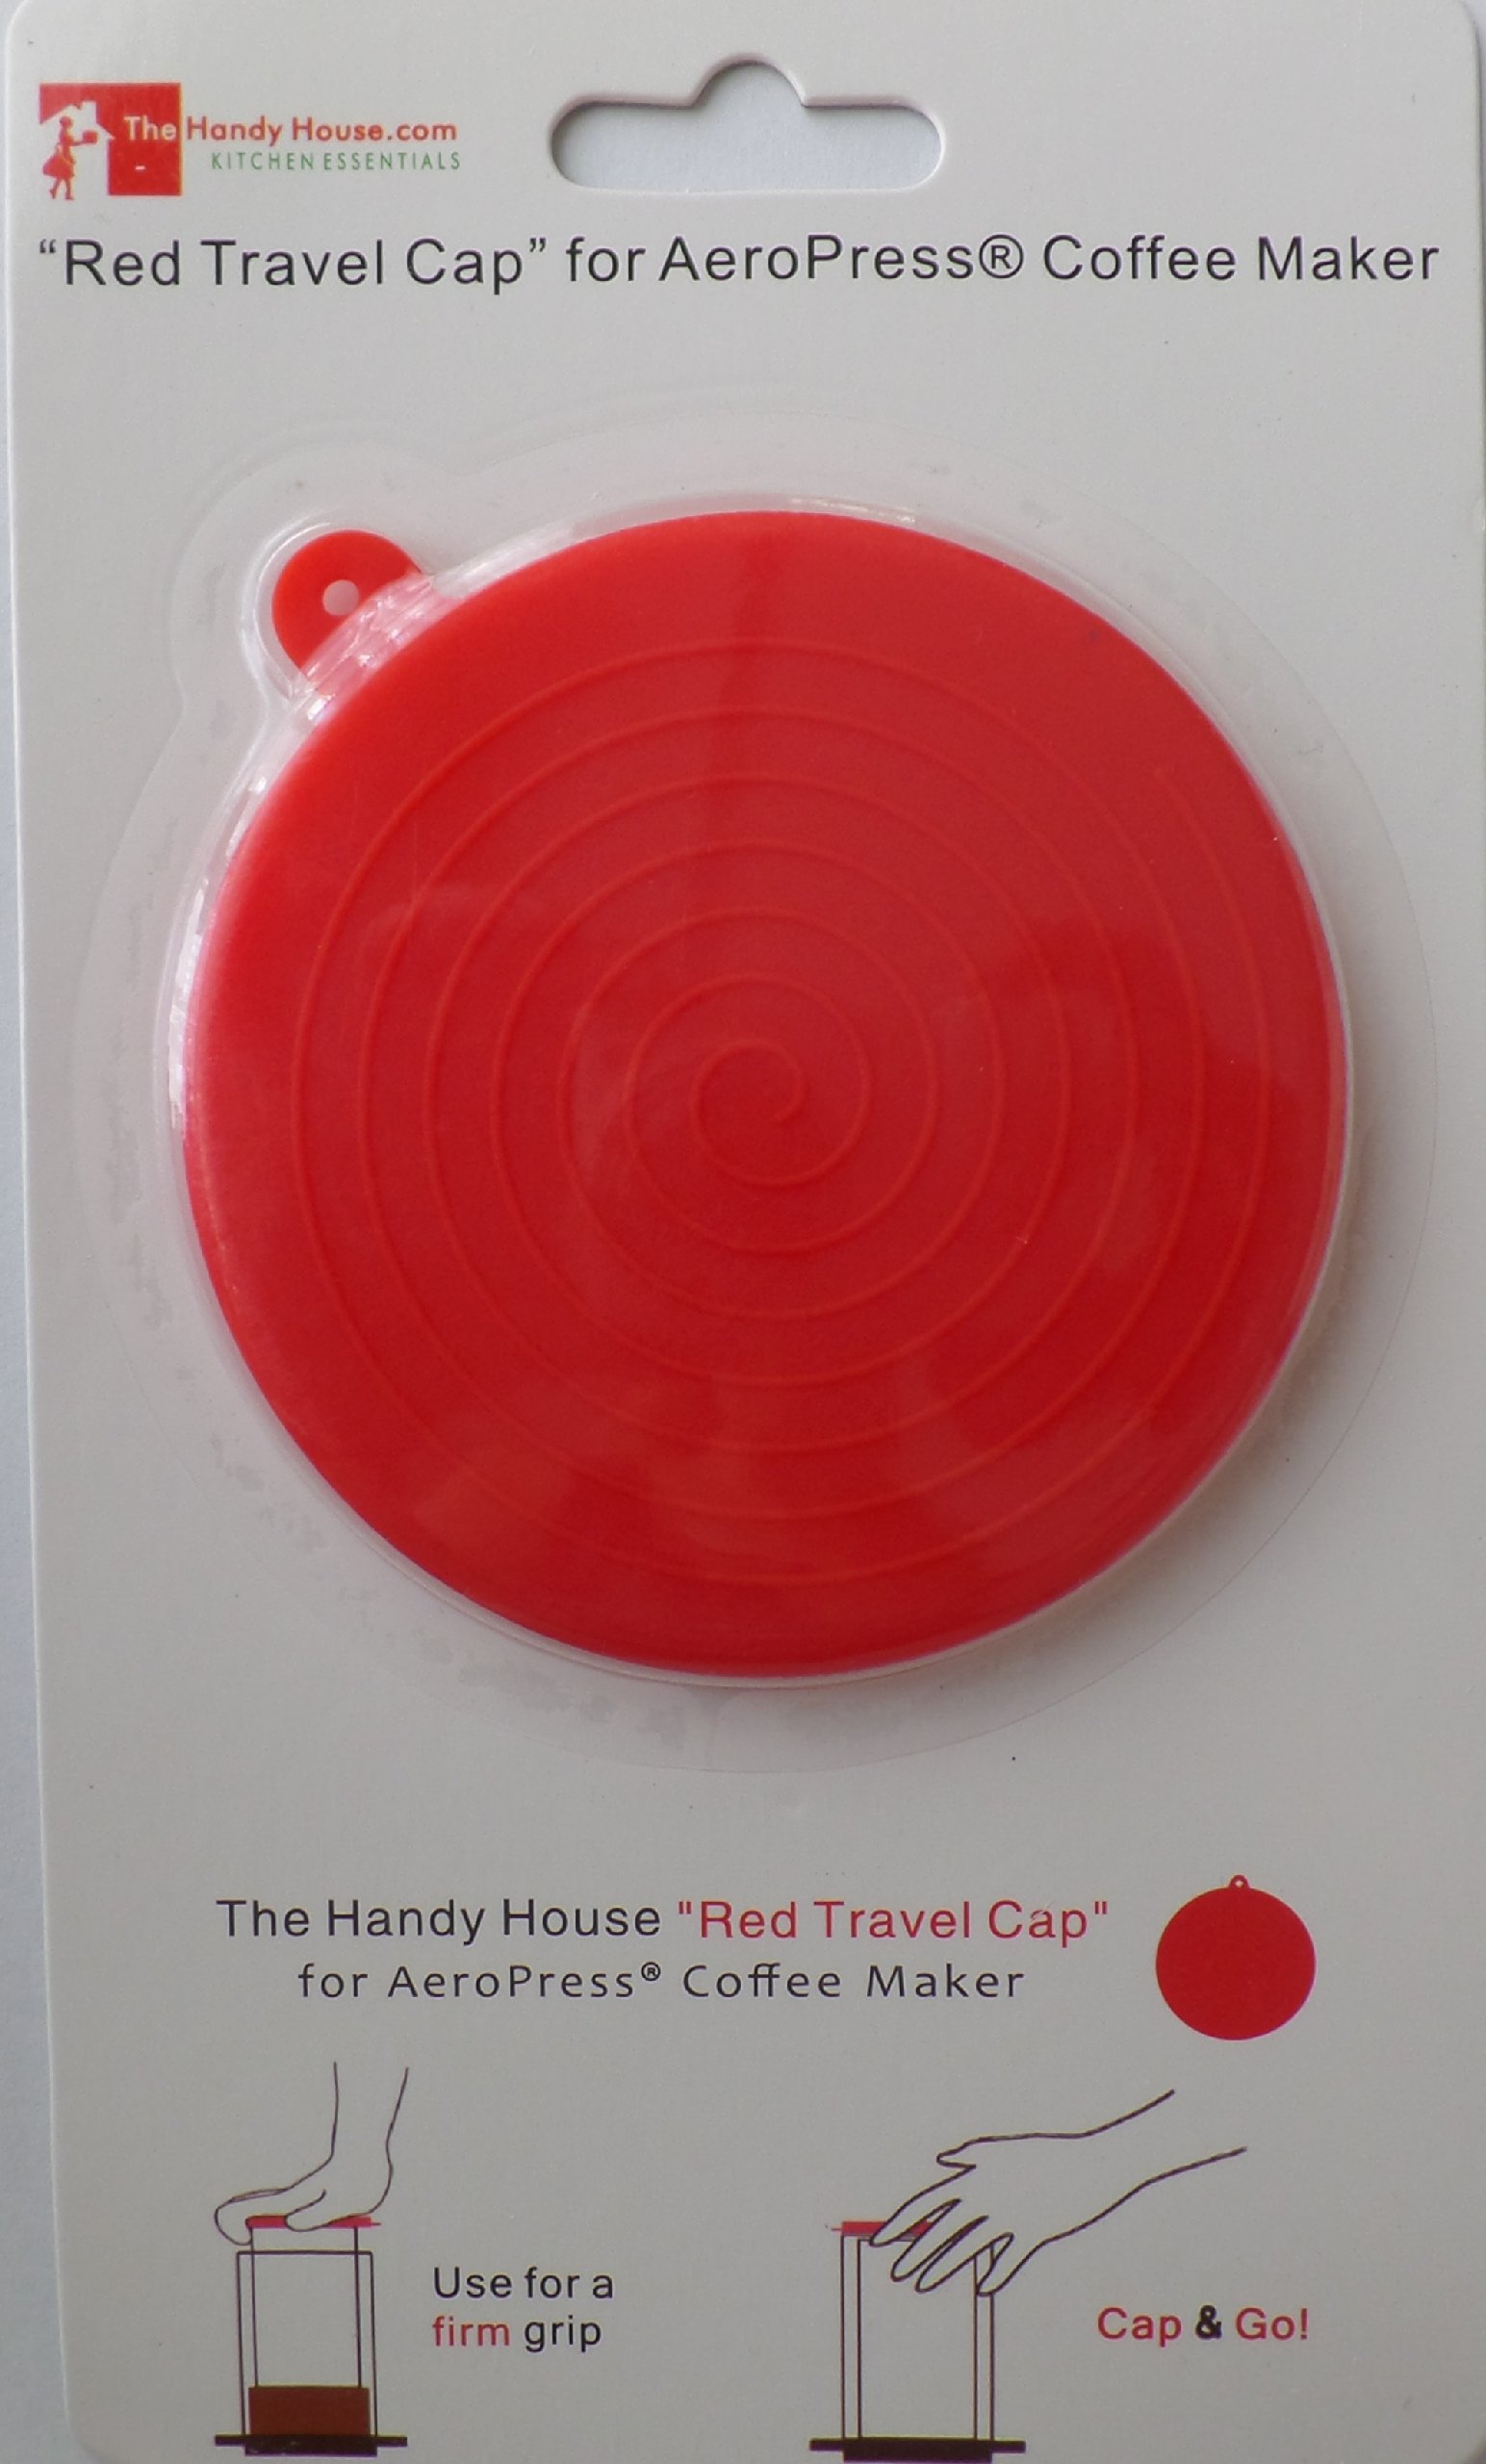 The Handy House Travel Cap for AeroPress Coffee Maker, Red by The Handy House (Image #7)